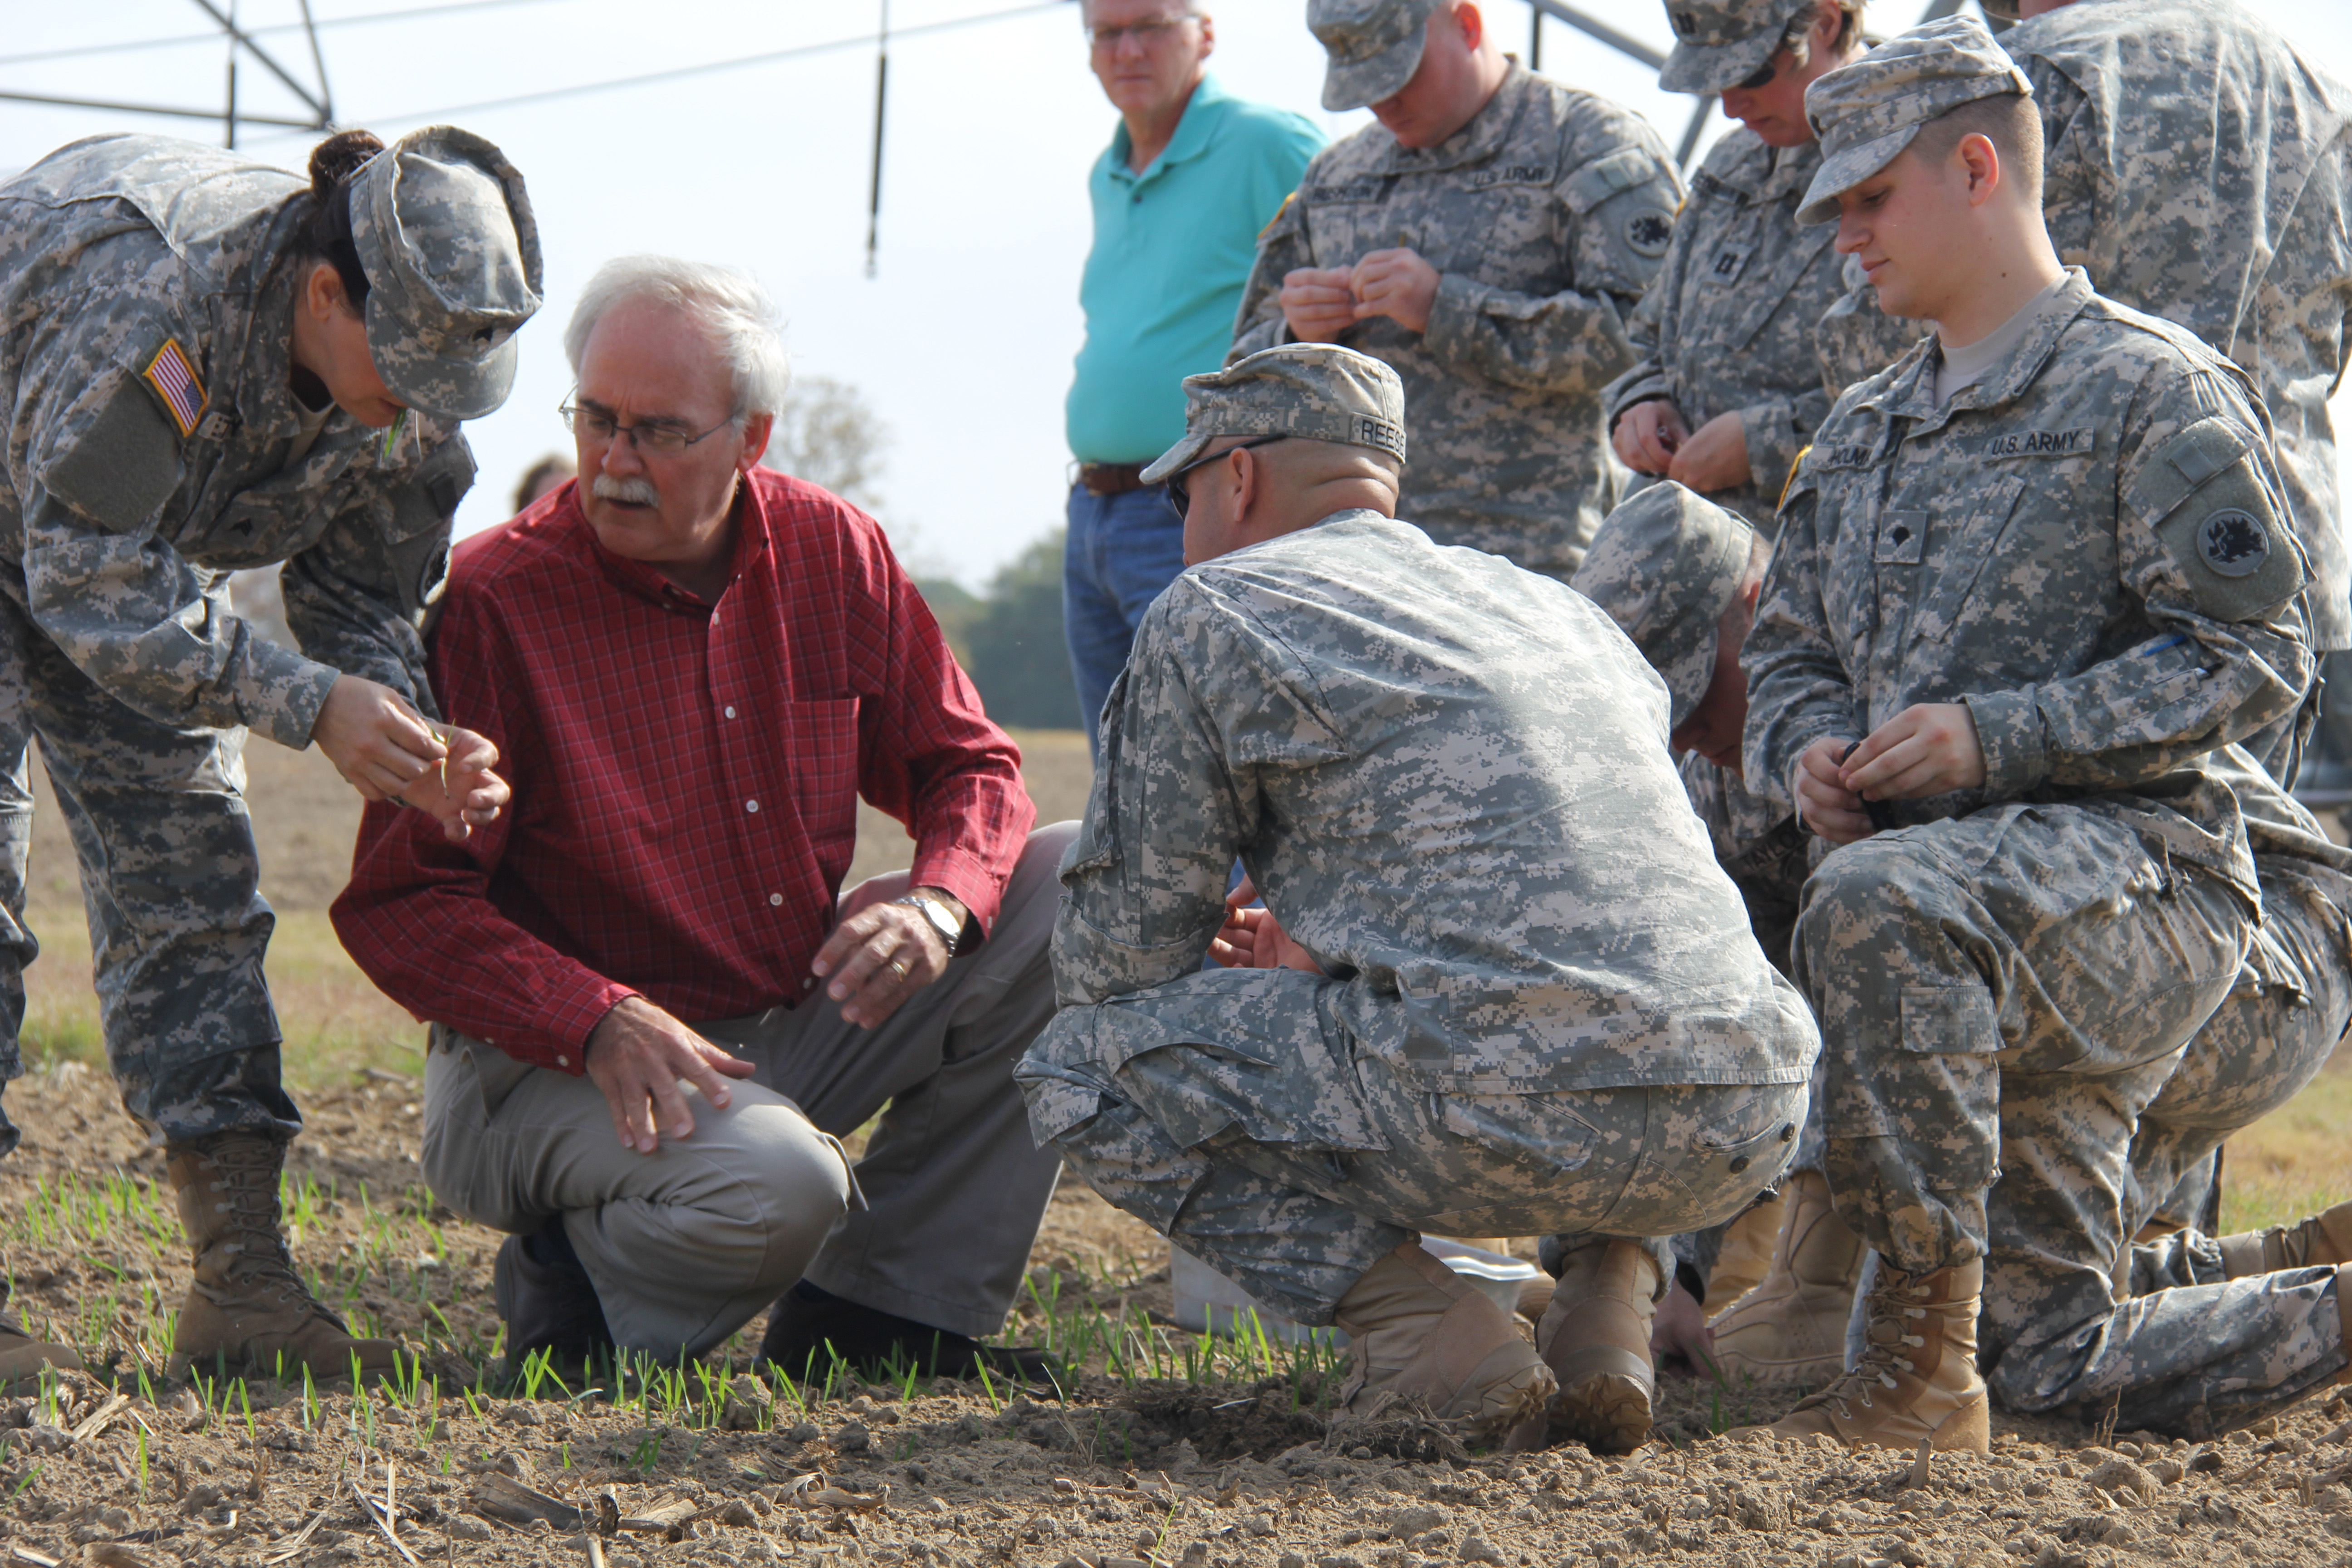 Dewey Long shows newly planted wheat to members of the Georgia National Guard. In Afghnistan, wheat is a vital crop for the population providing food and shelter for the people and animals.